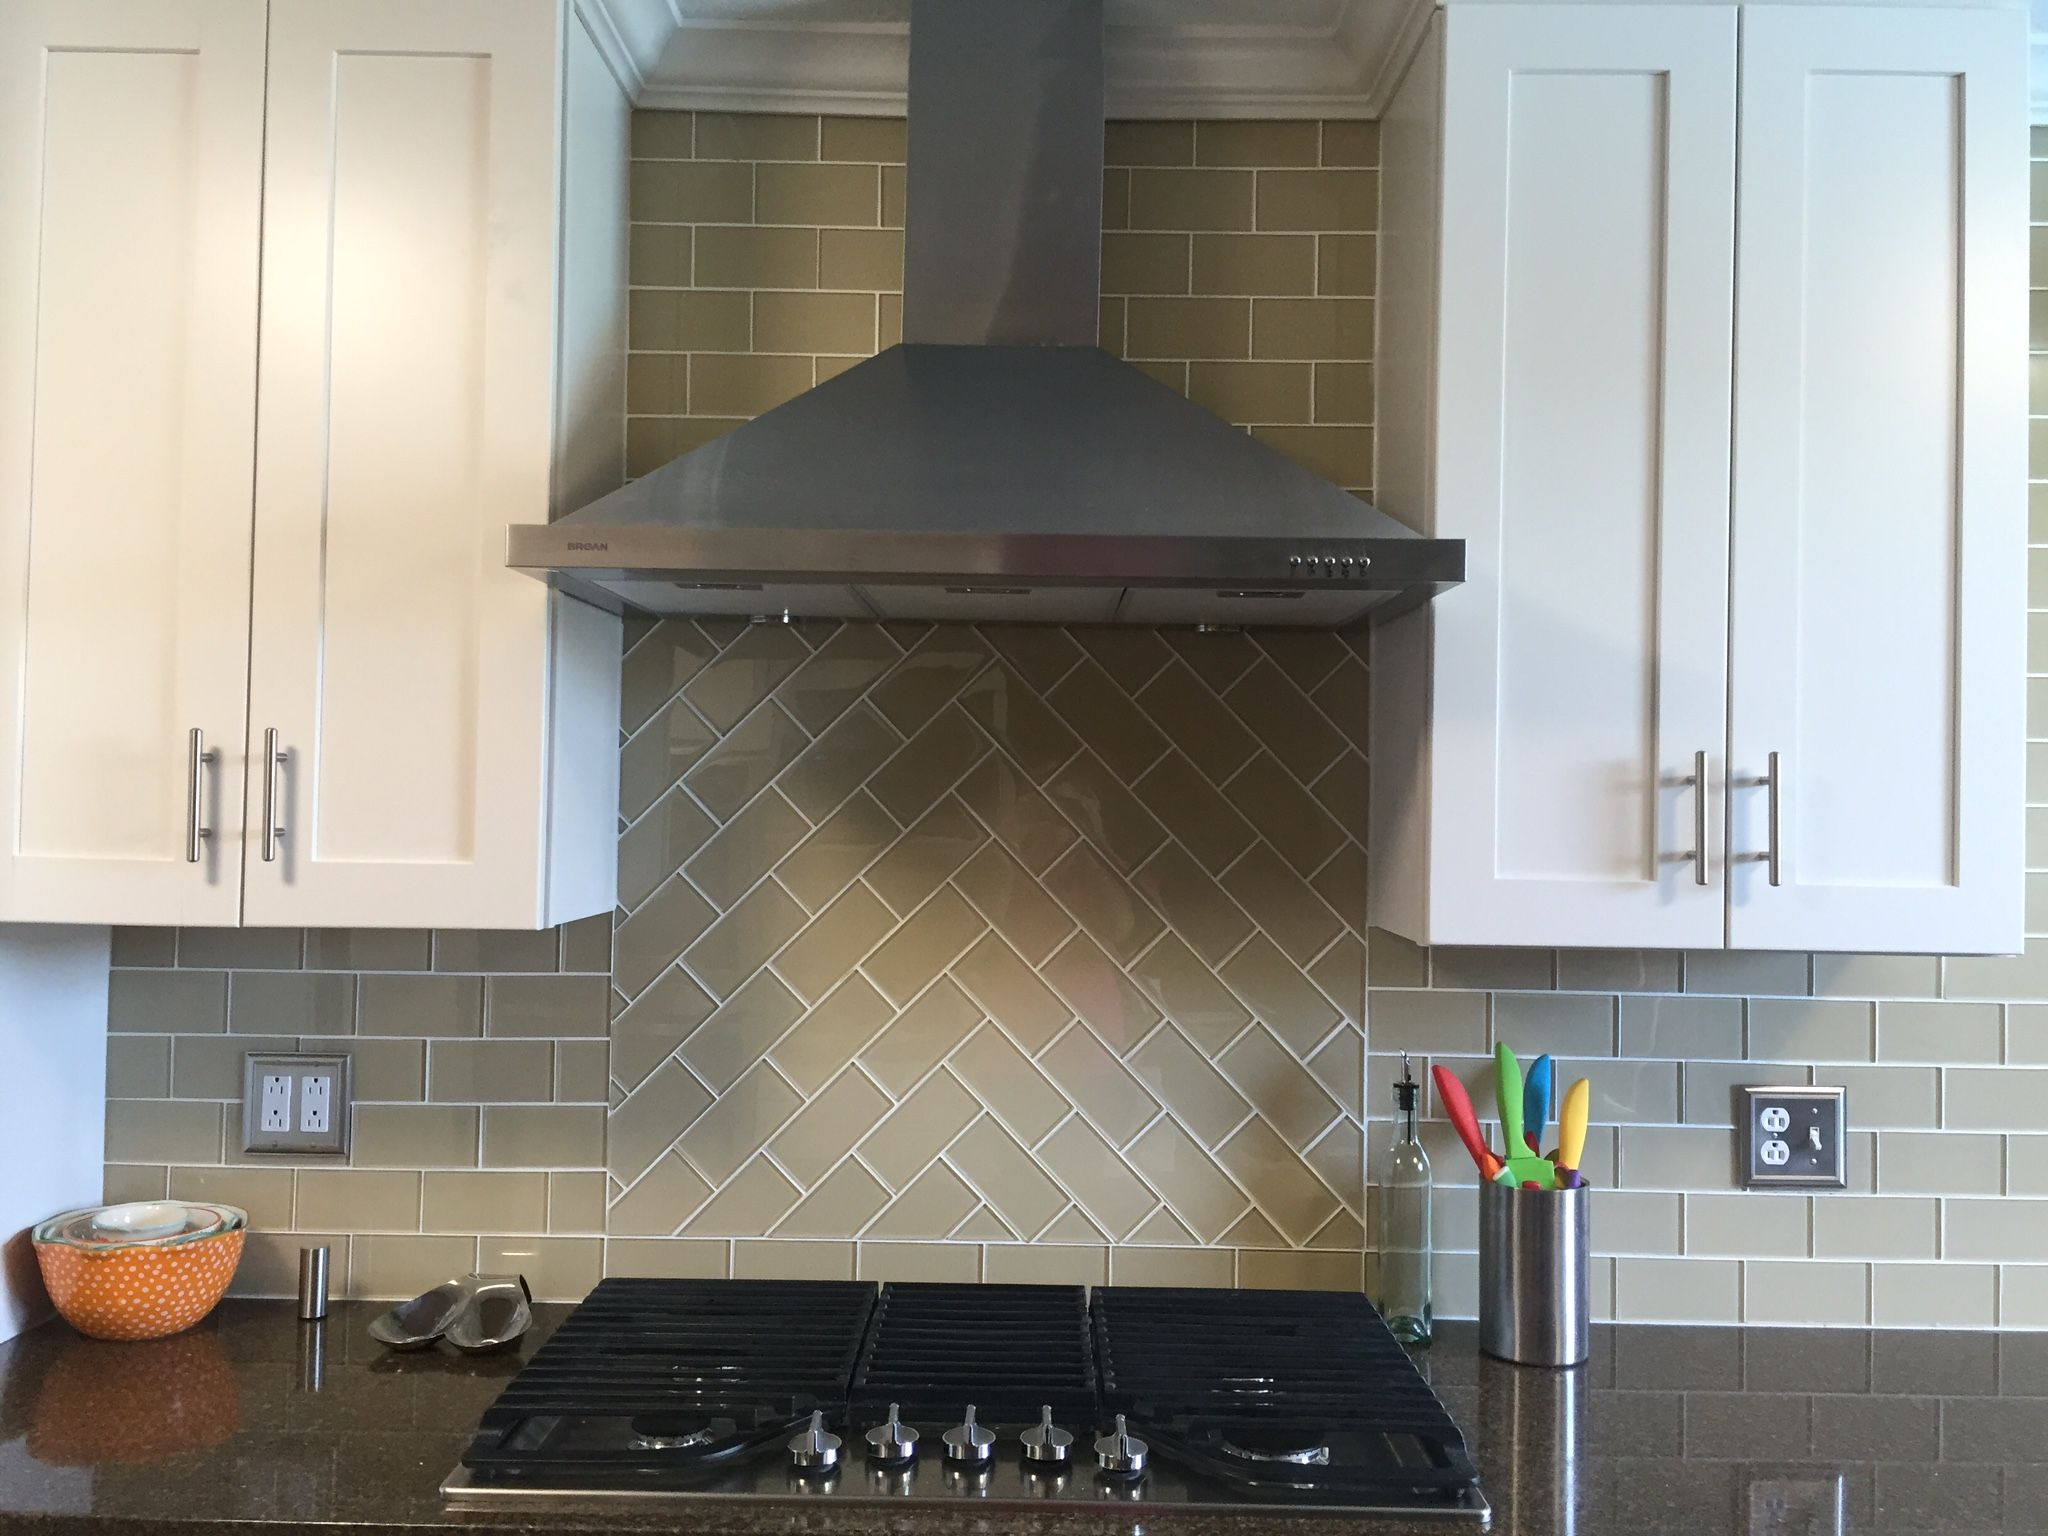 Kitchen Backsplash Accent Tiles Photos stunning khaki glass subway tile chevron pattern above the stove